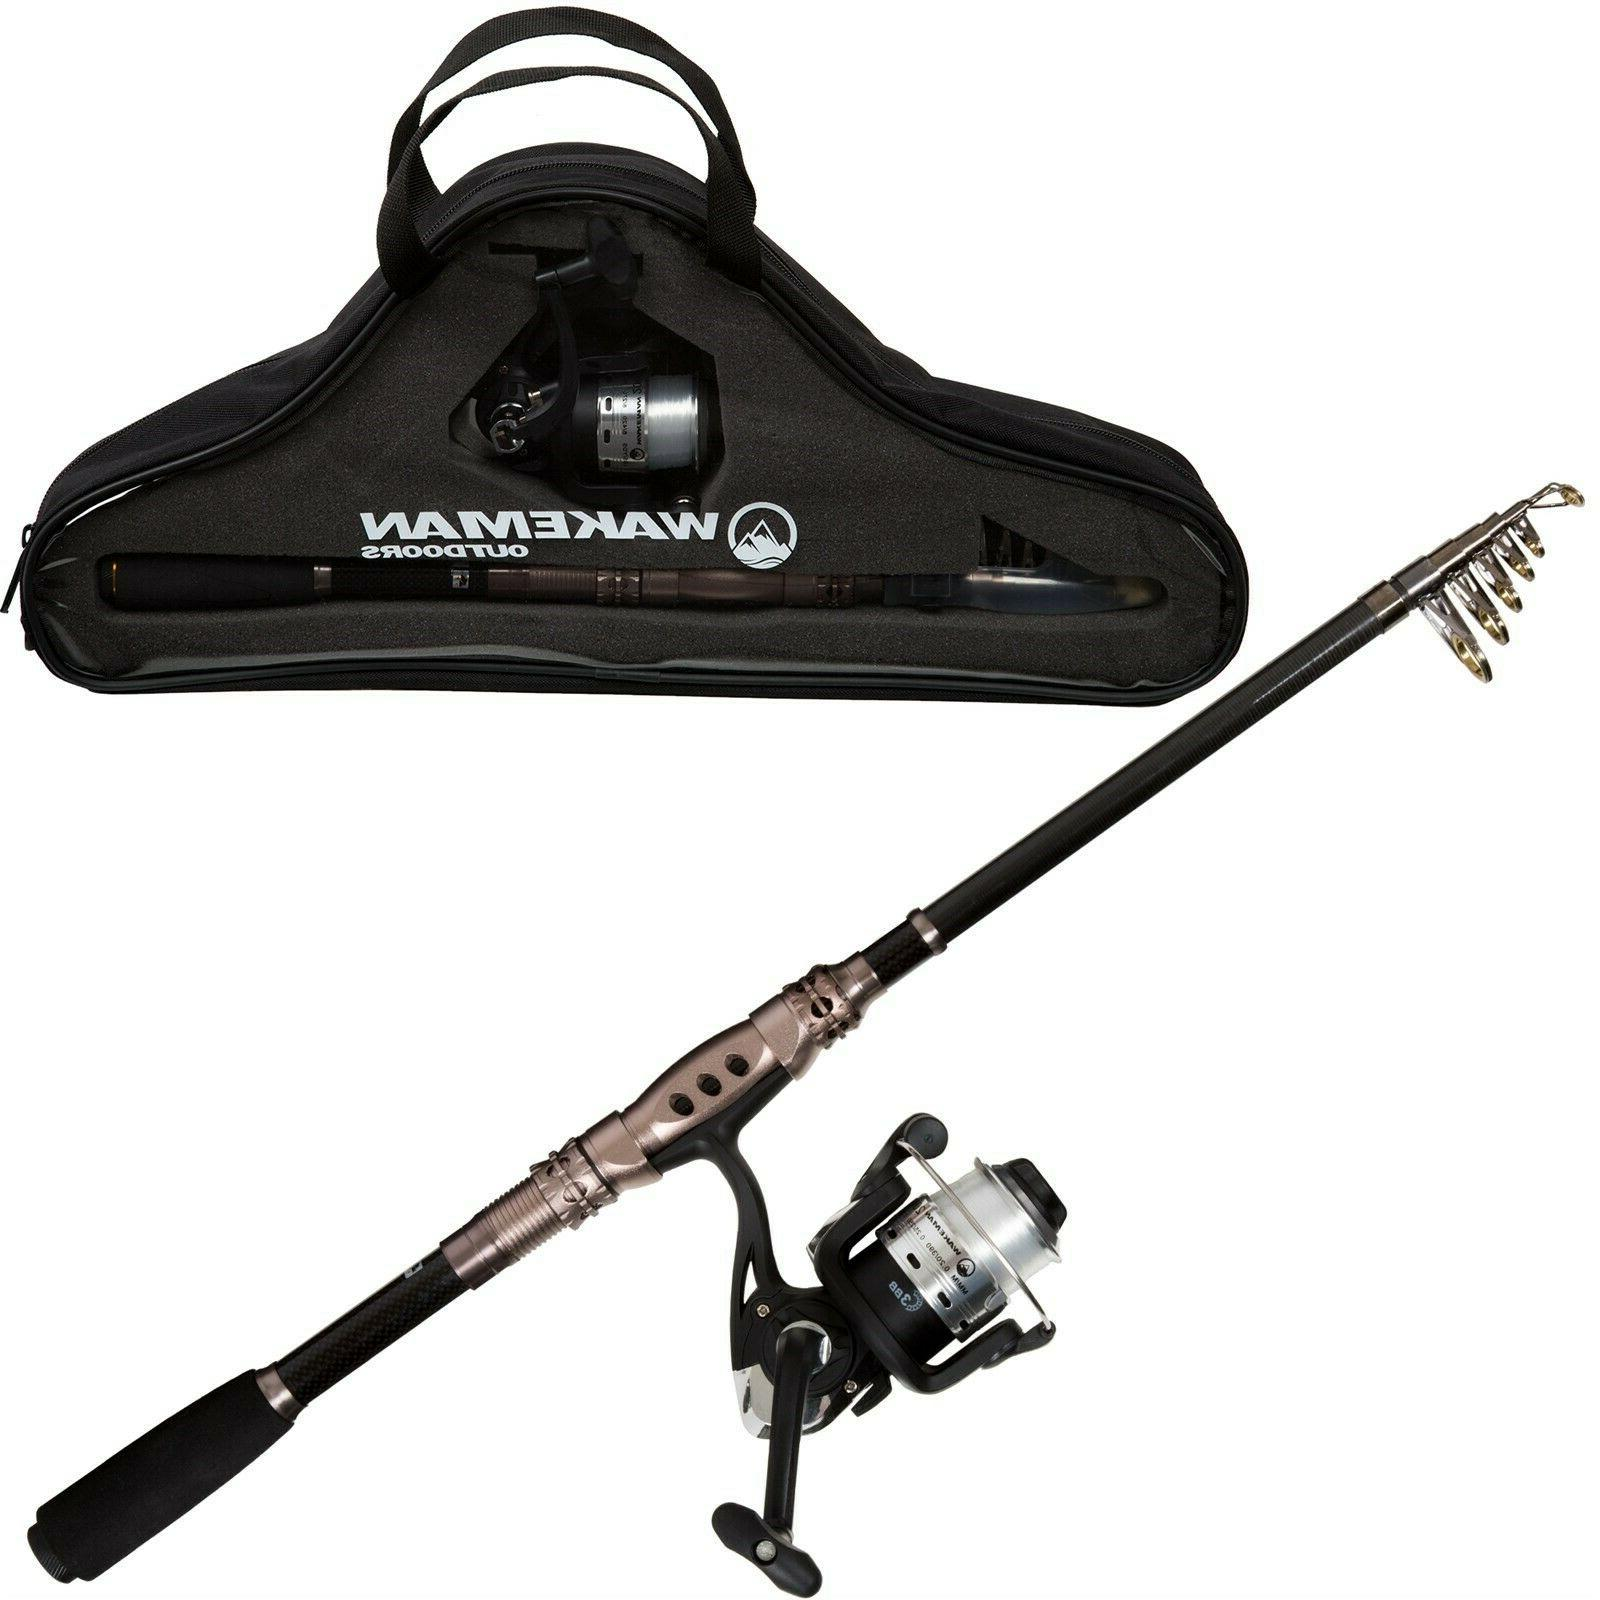 Telescopic Carbon Fiber and Steel Rod and Reel Combo 86 Inch